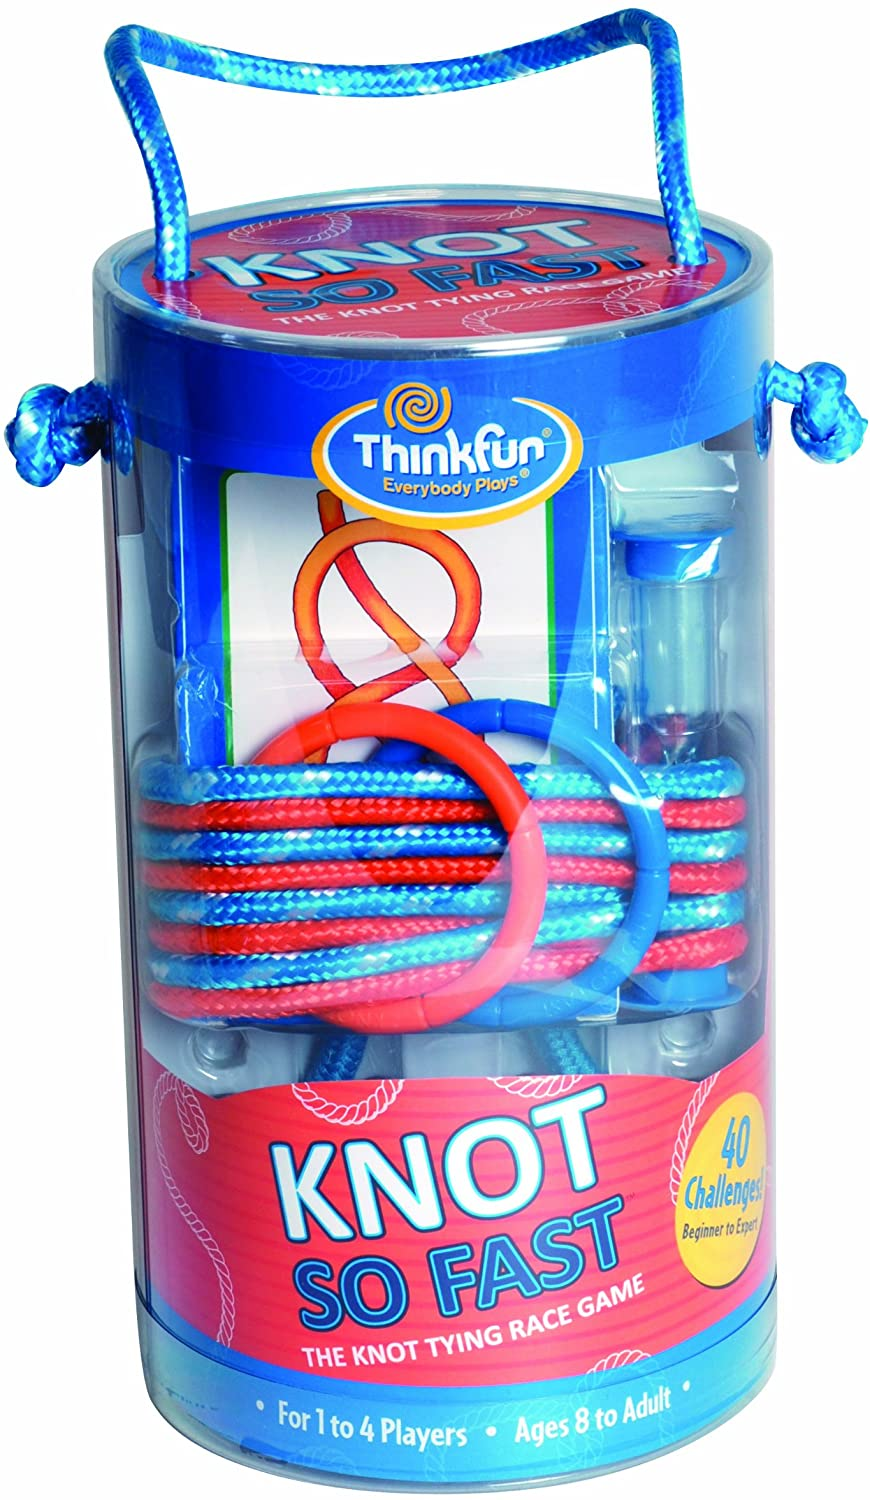 Knot So Fast Innovative Knot Tying Game with 40 Challenges